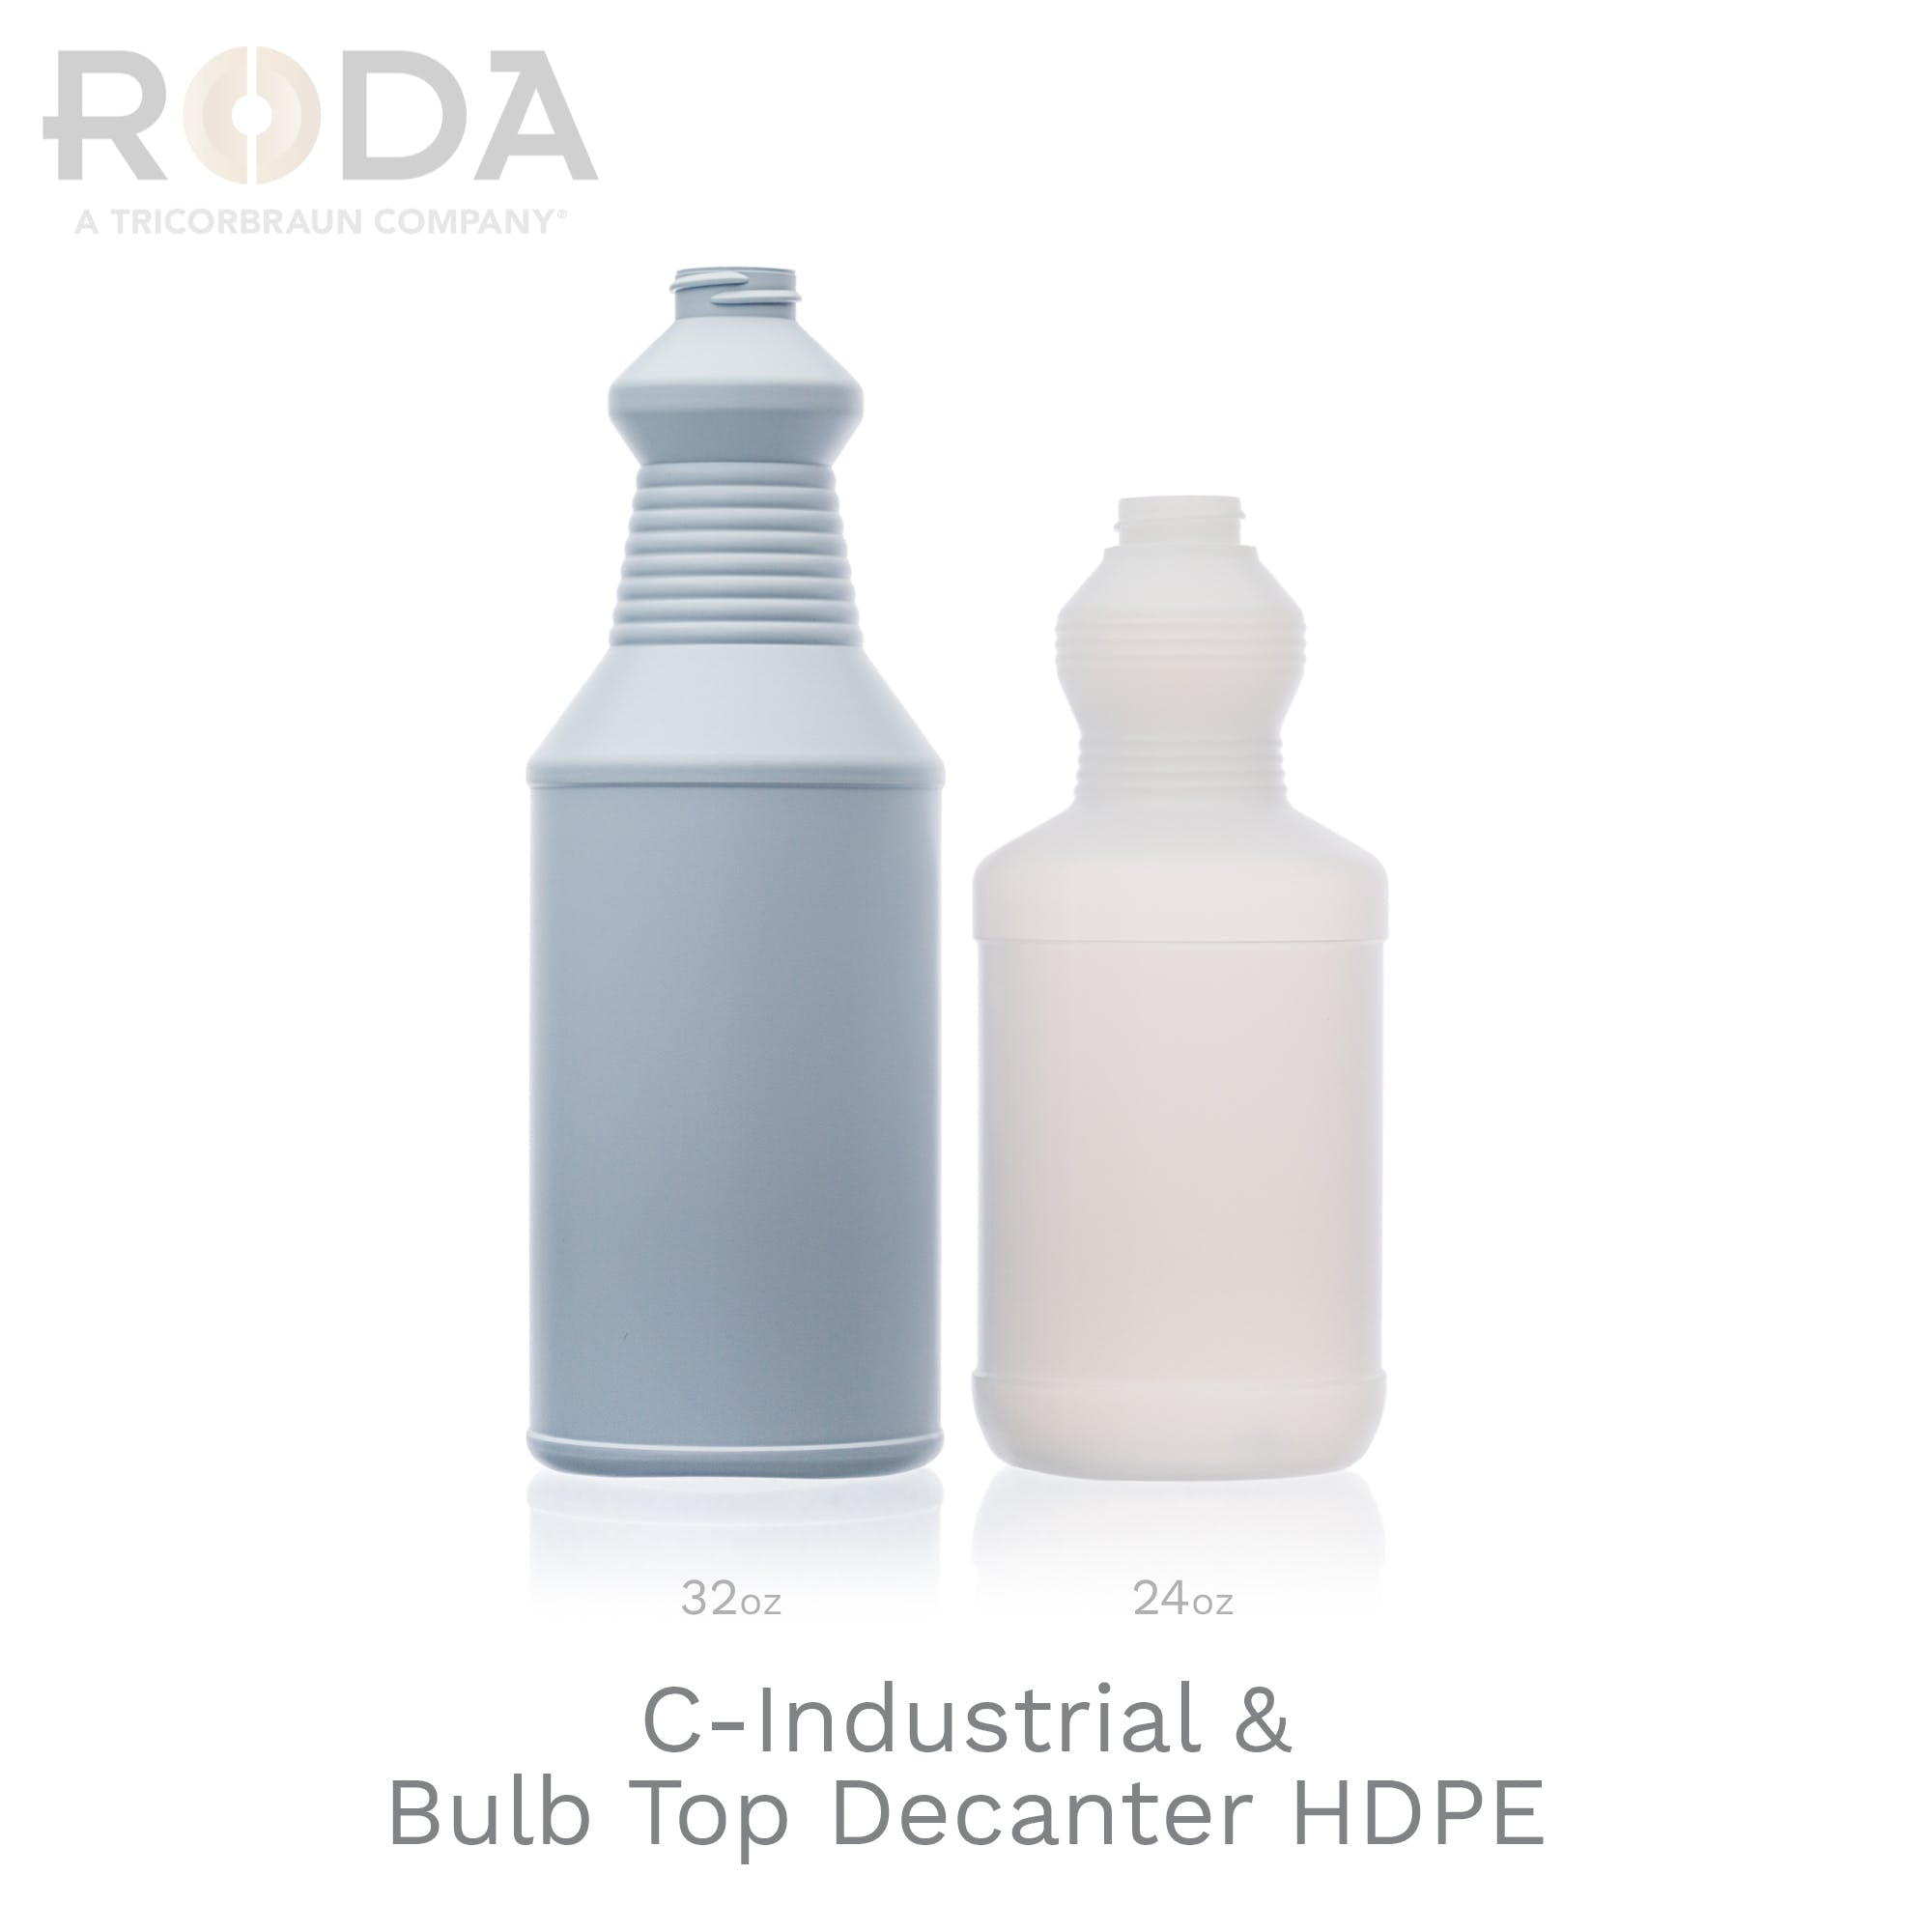 C-Industrial & Bulb Top Decanter HDPE